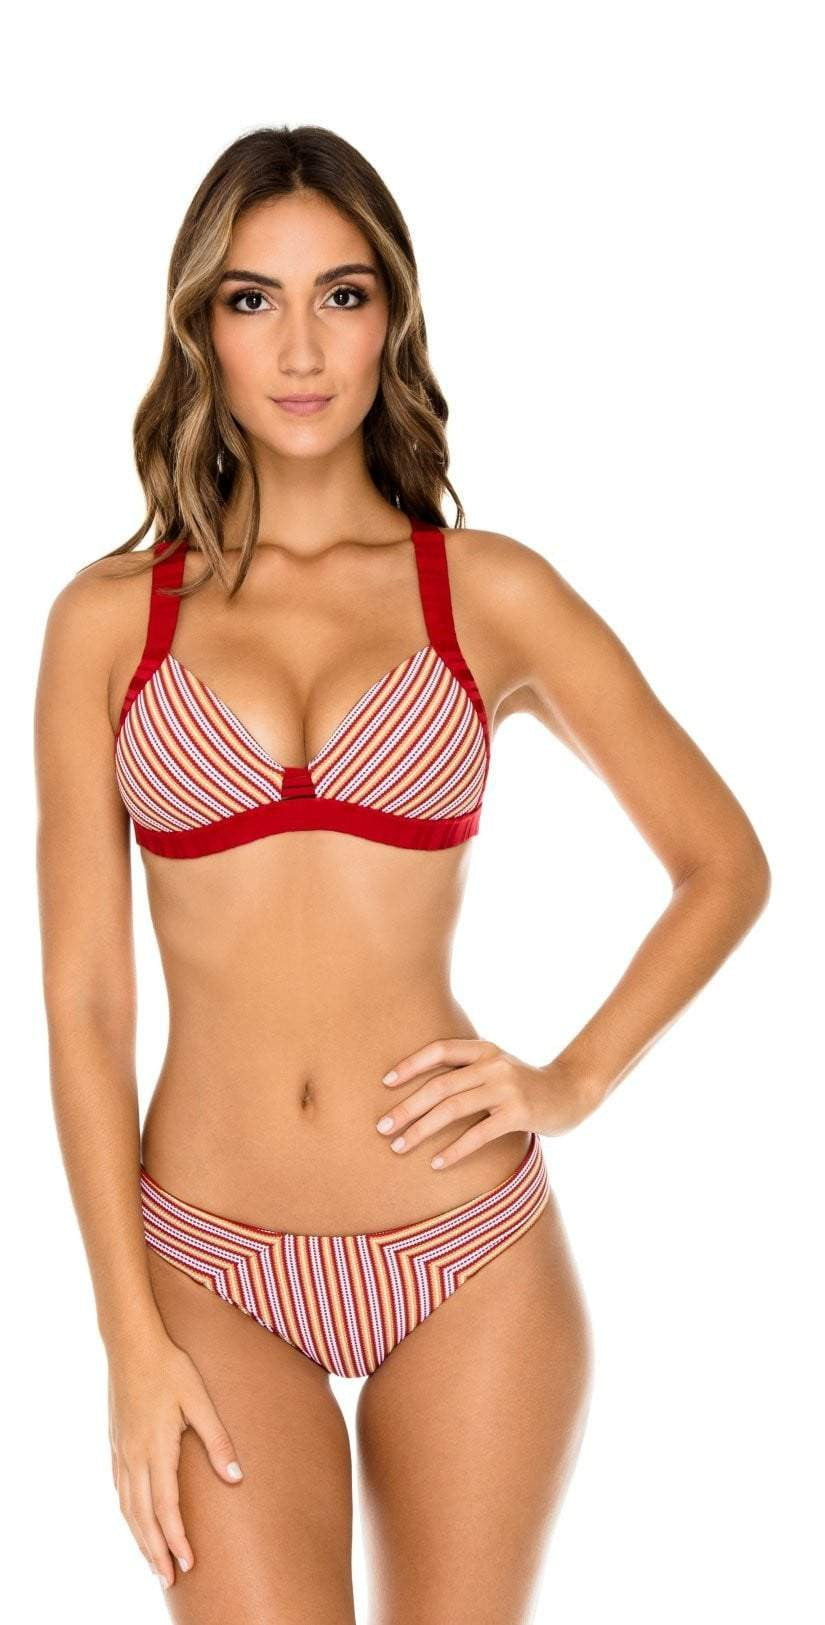 Luli Fama Torre de Oro Push Up Halter Top in Red L580M65 475: